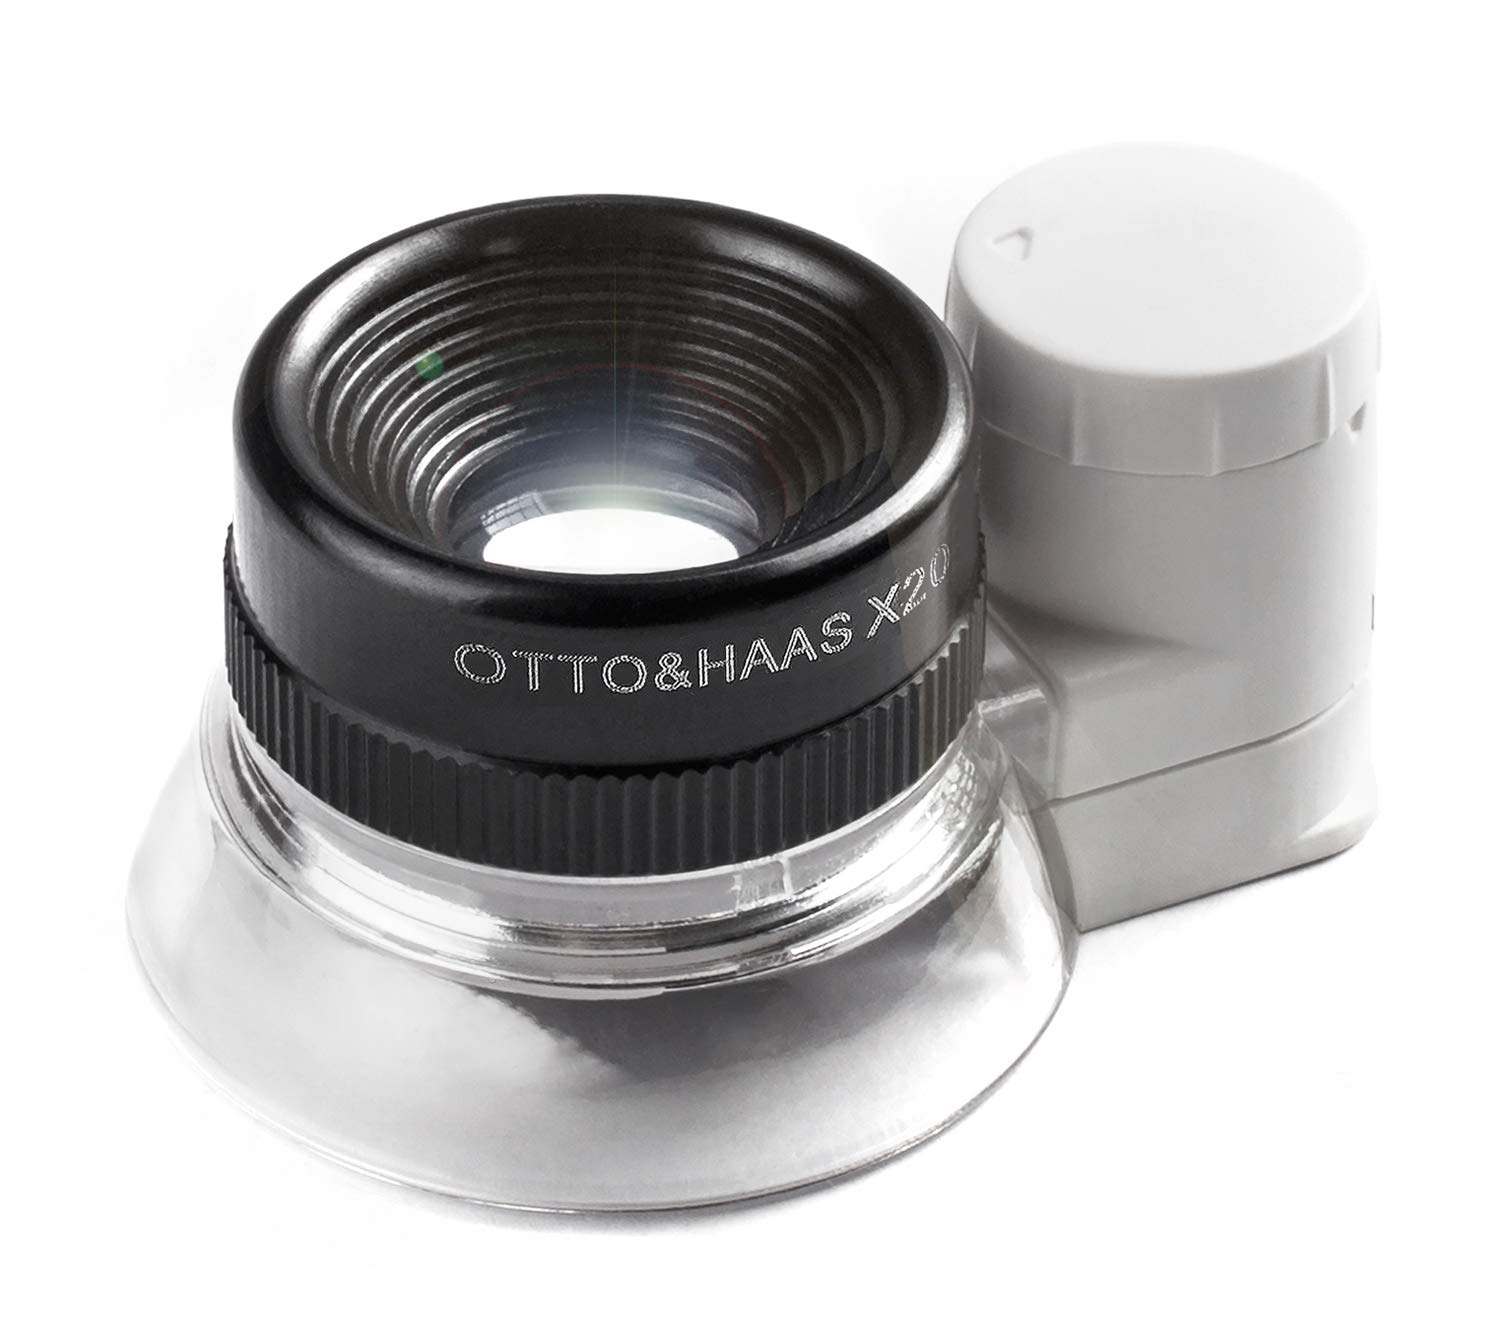 Otto&Haas 20X Lighted Jewelers Loupe - Jewelry and Coin Magnifier with Light - Jeweler's Loop with LED Magnifying Glass Eye Lens - Tool for Diamonds, Coin Collection Supplies, Stamp Collecting 4336837782